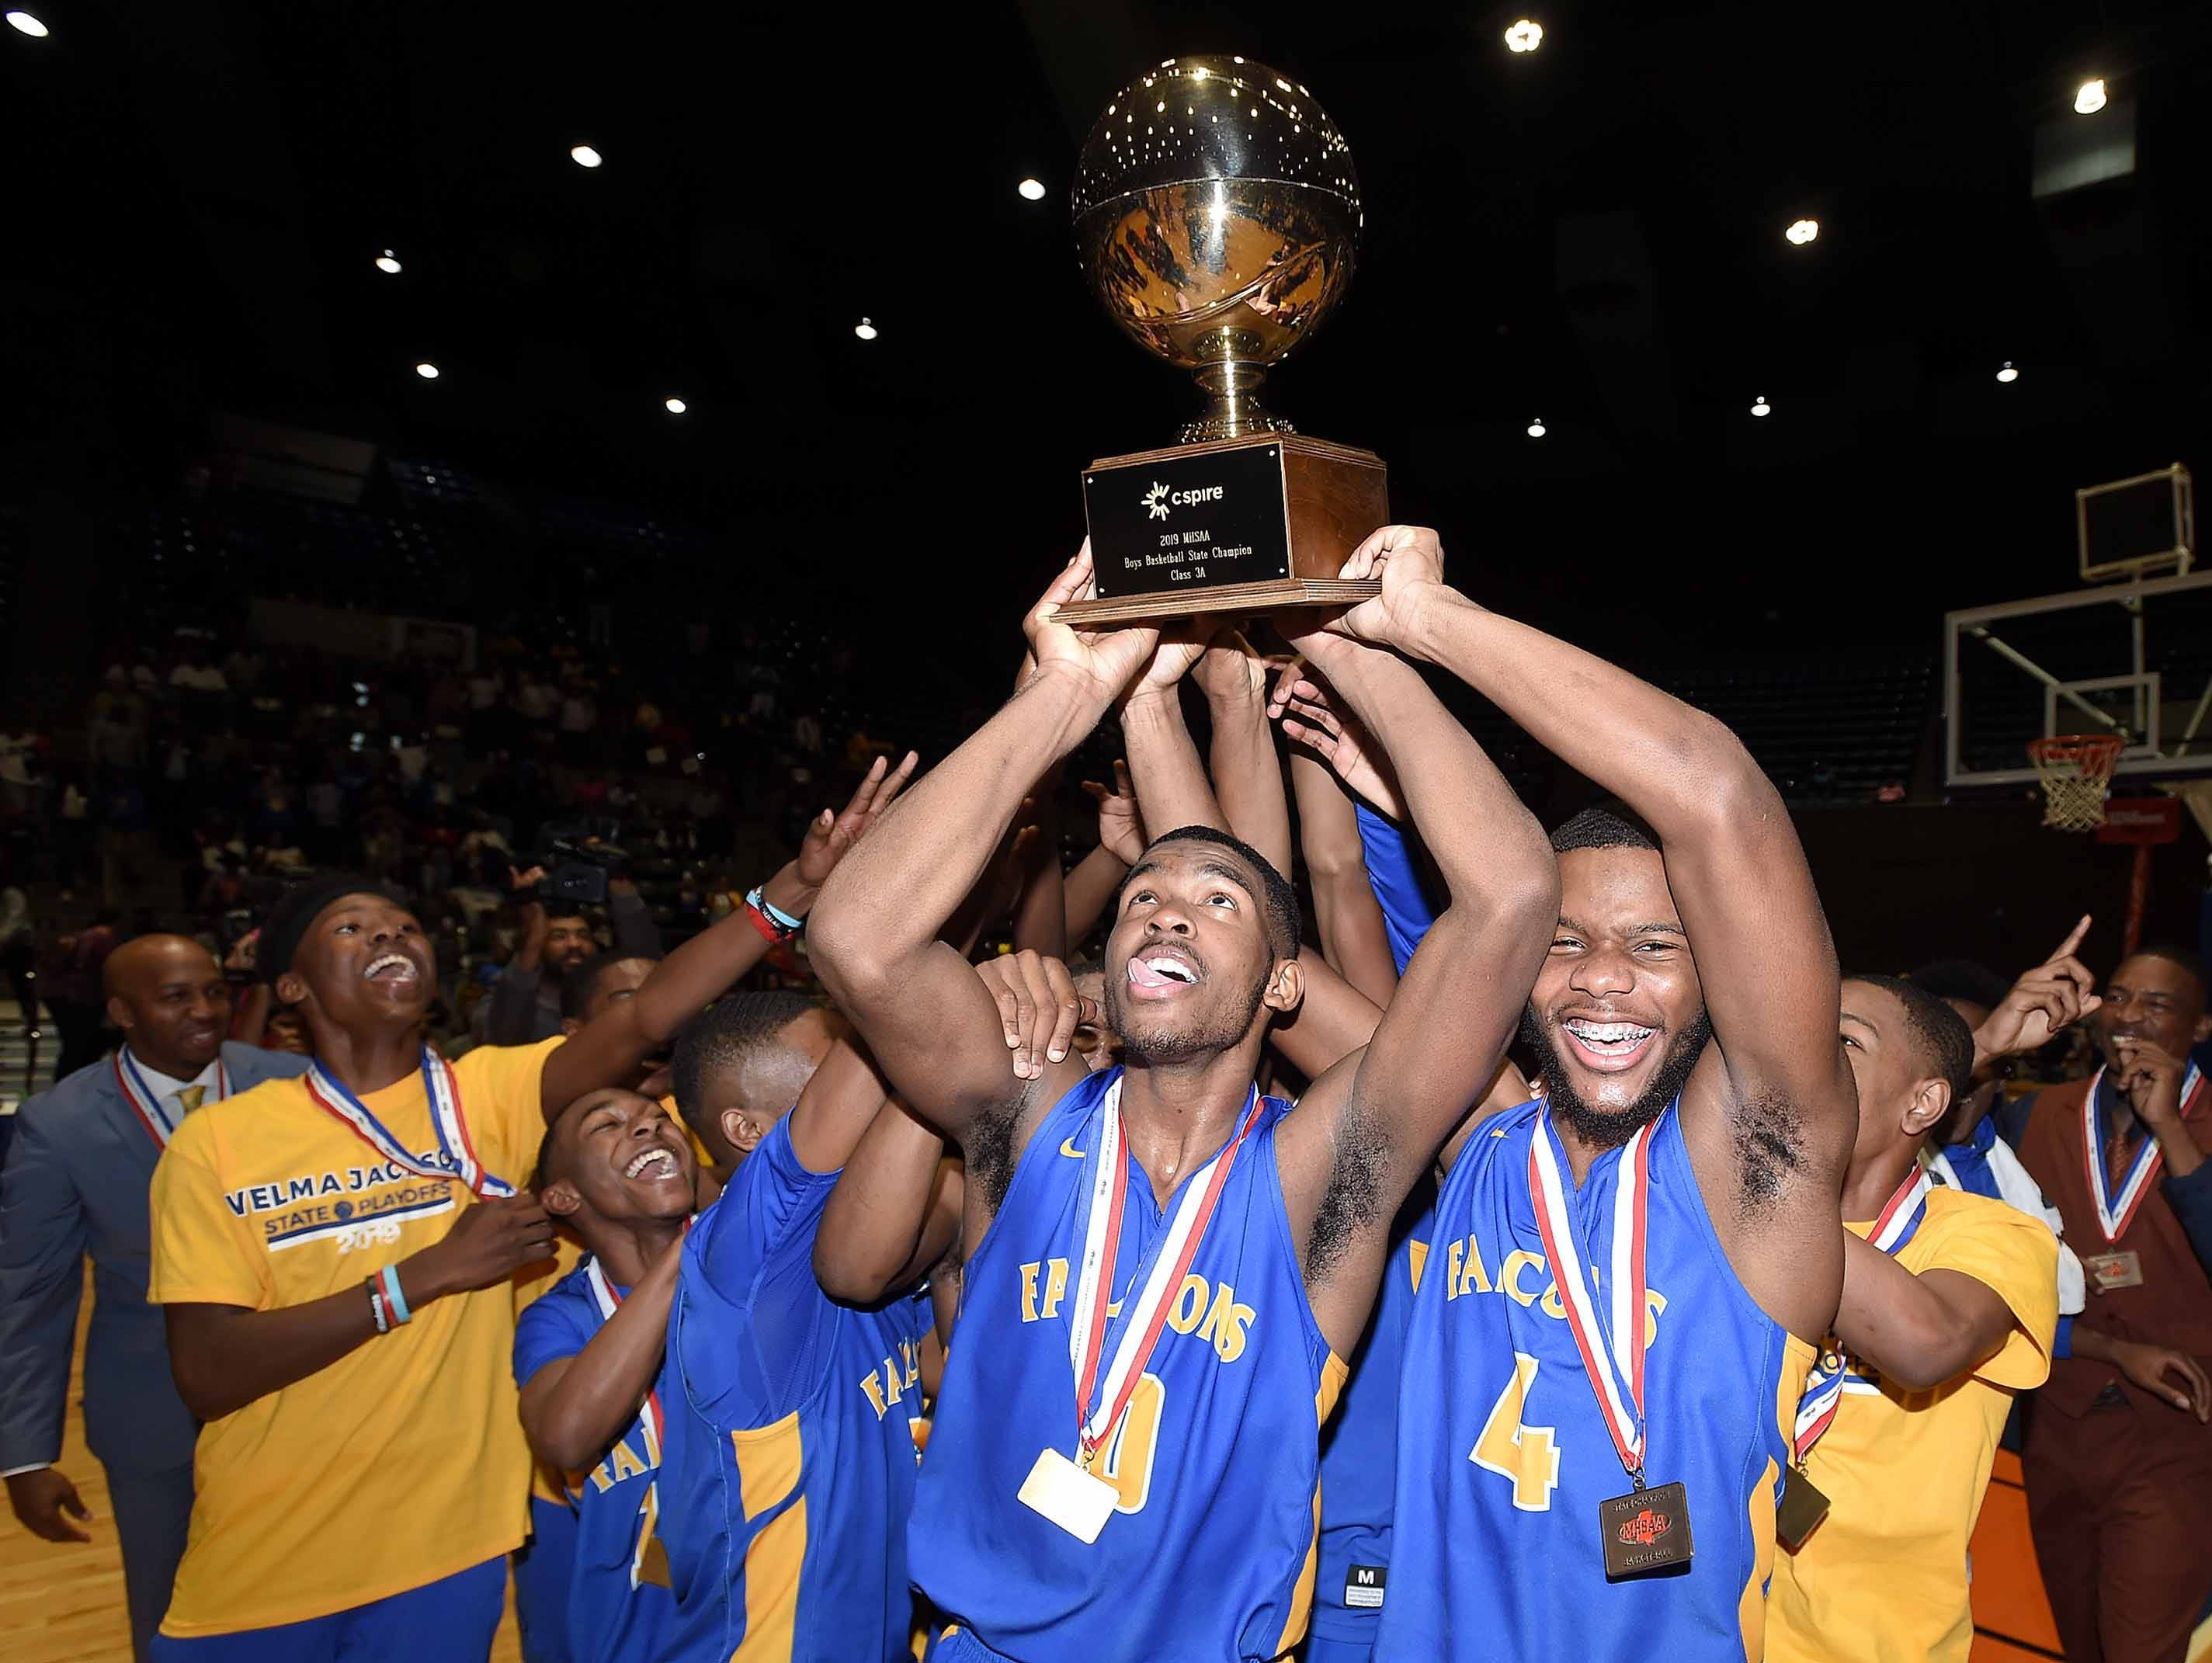 The Velma Jackson Falcons celebrate with the Class 3A trophy after beating Holly Springs in the finals of the MHSAA C Spire State Basketball Championships at the Mississippi Coliseum in Jackson, Miss., on Saturday, March 9, 2019.